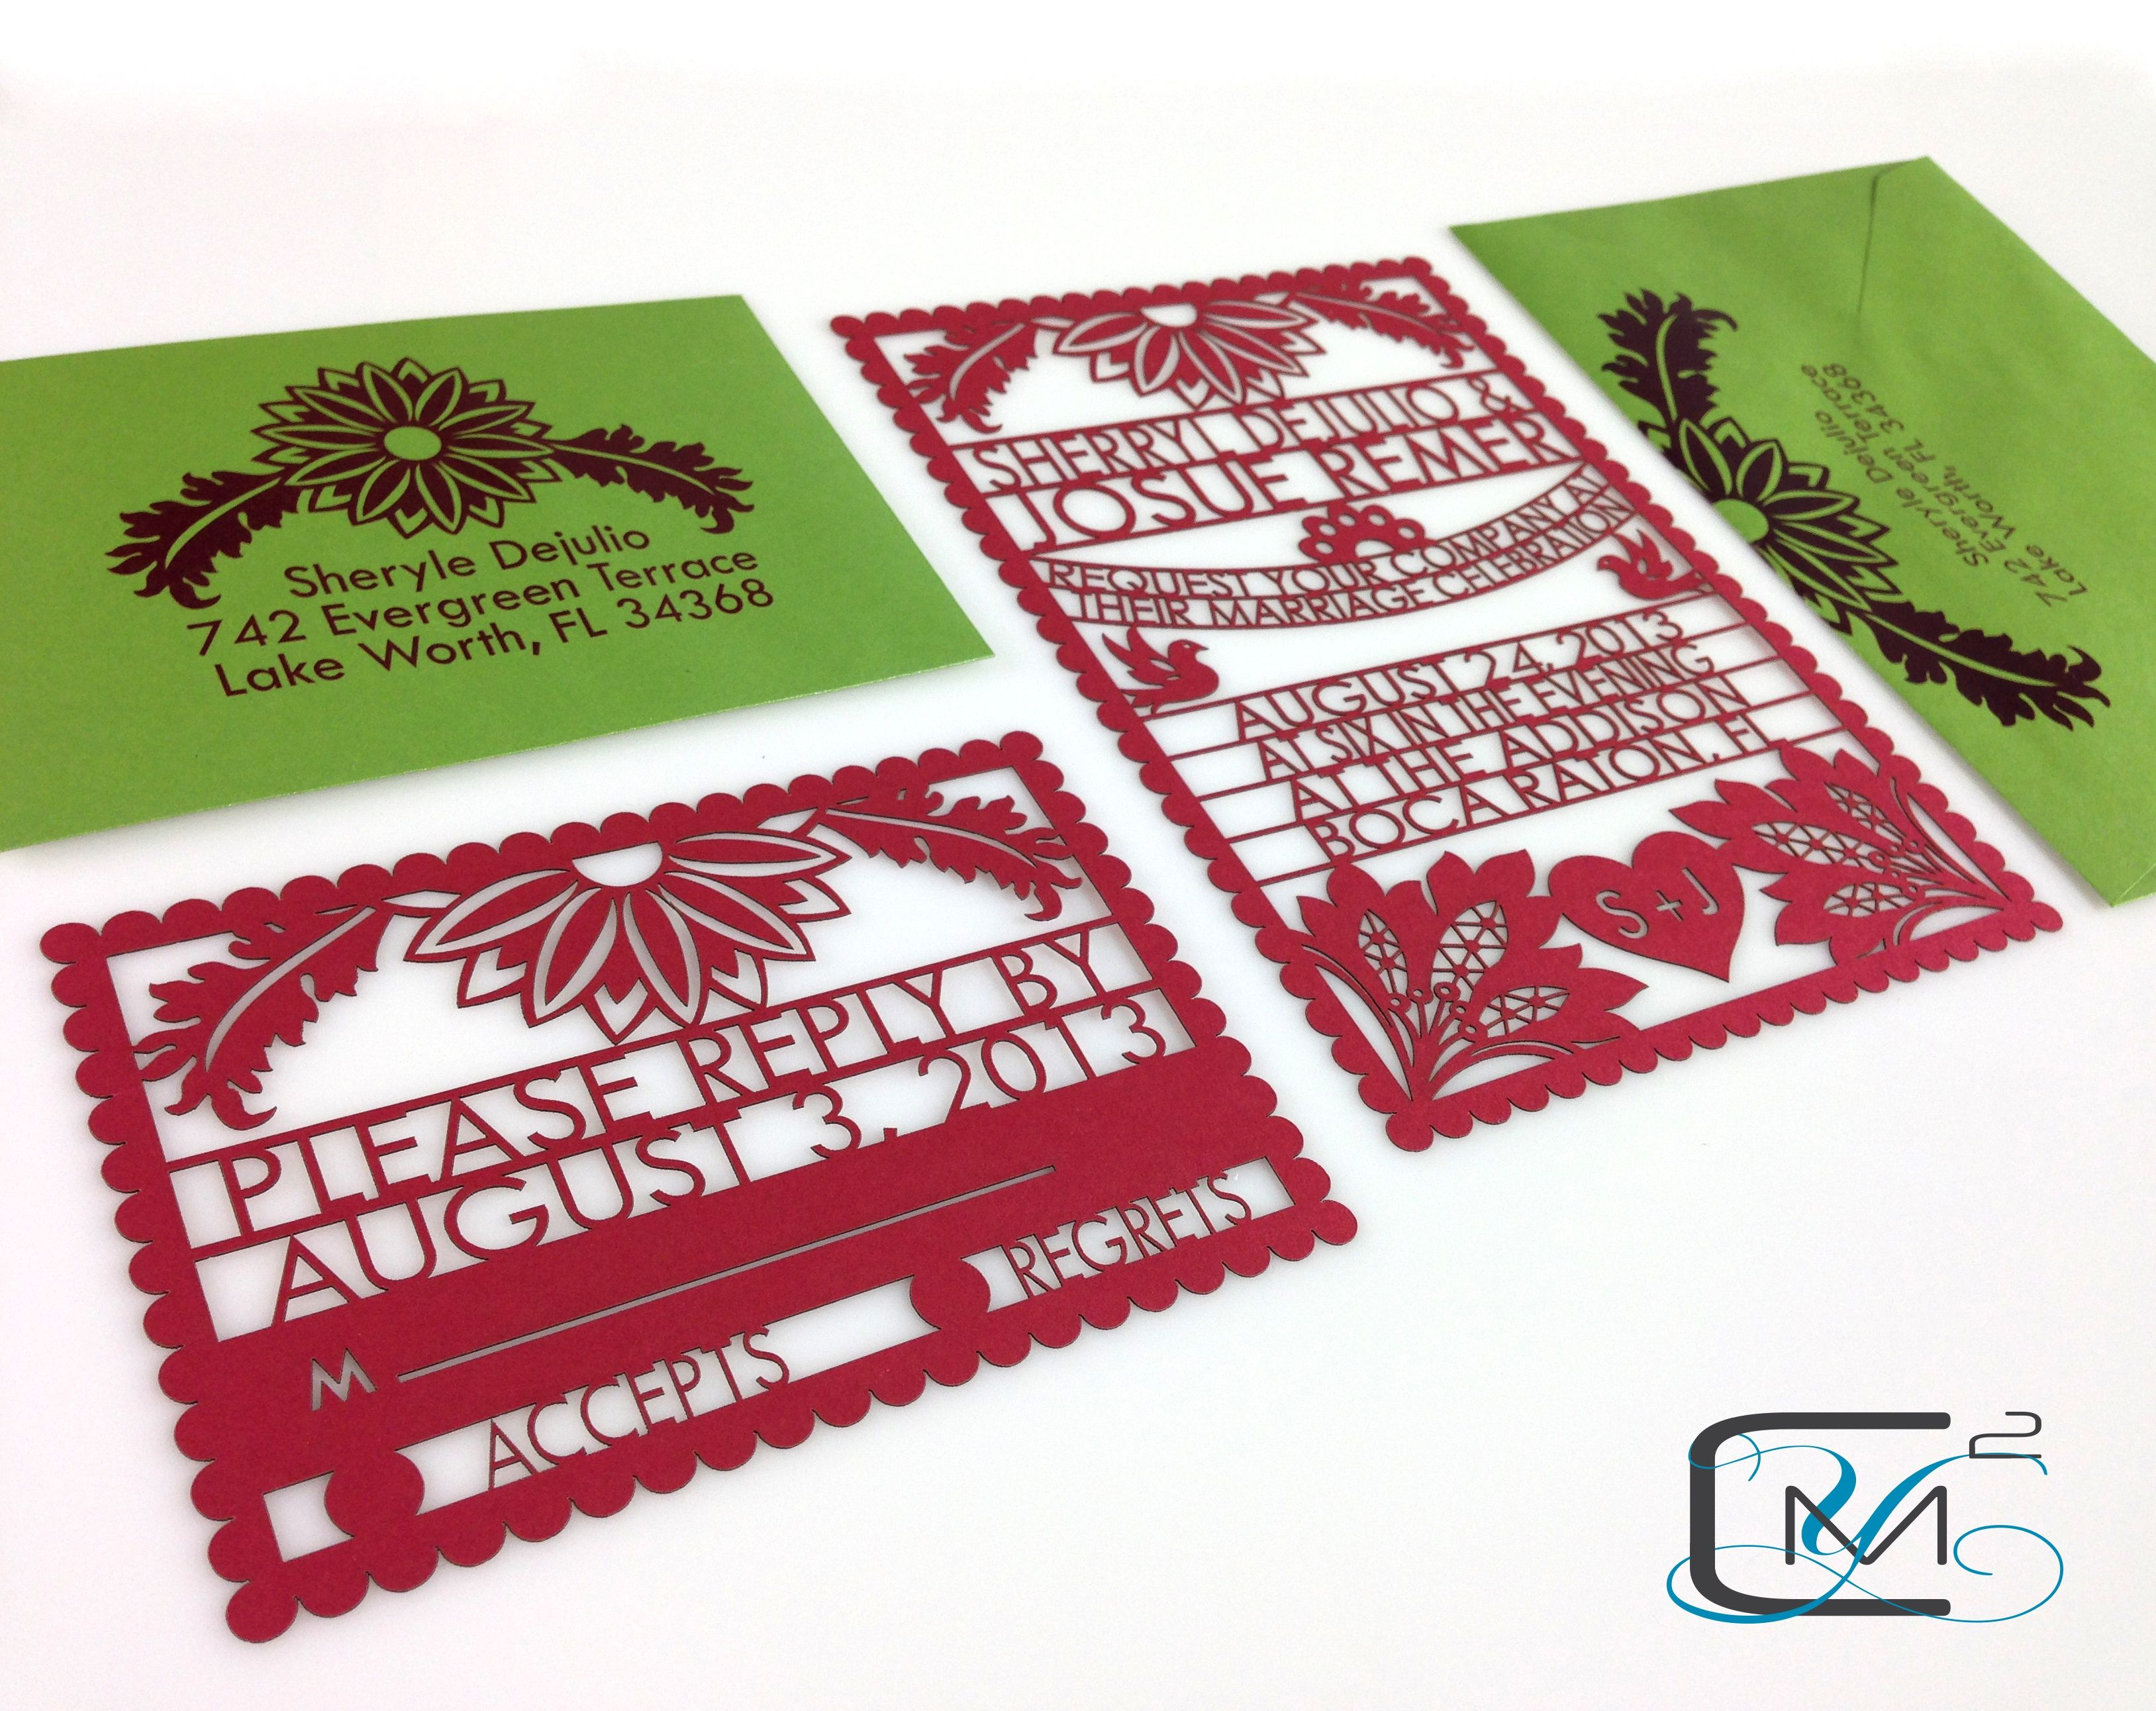 Custom Laser Cut Wedding Invitation Mexican Themed Invitations By Concepts Miami Yanet C2miamibyyanet Instagram Twitter